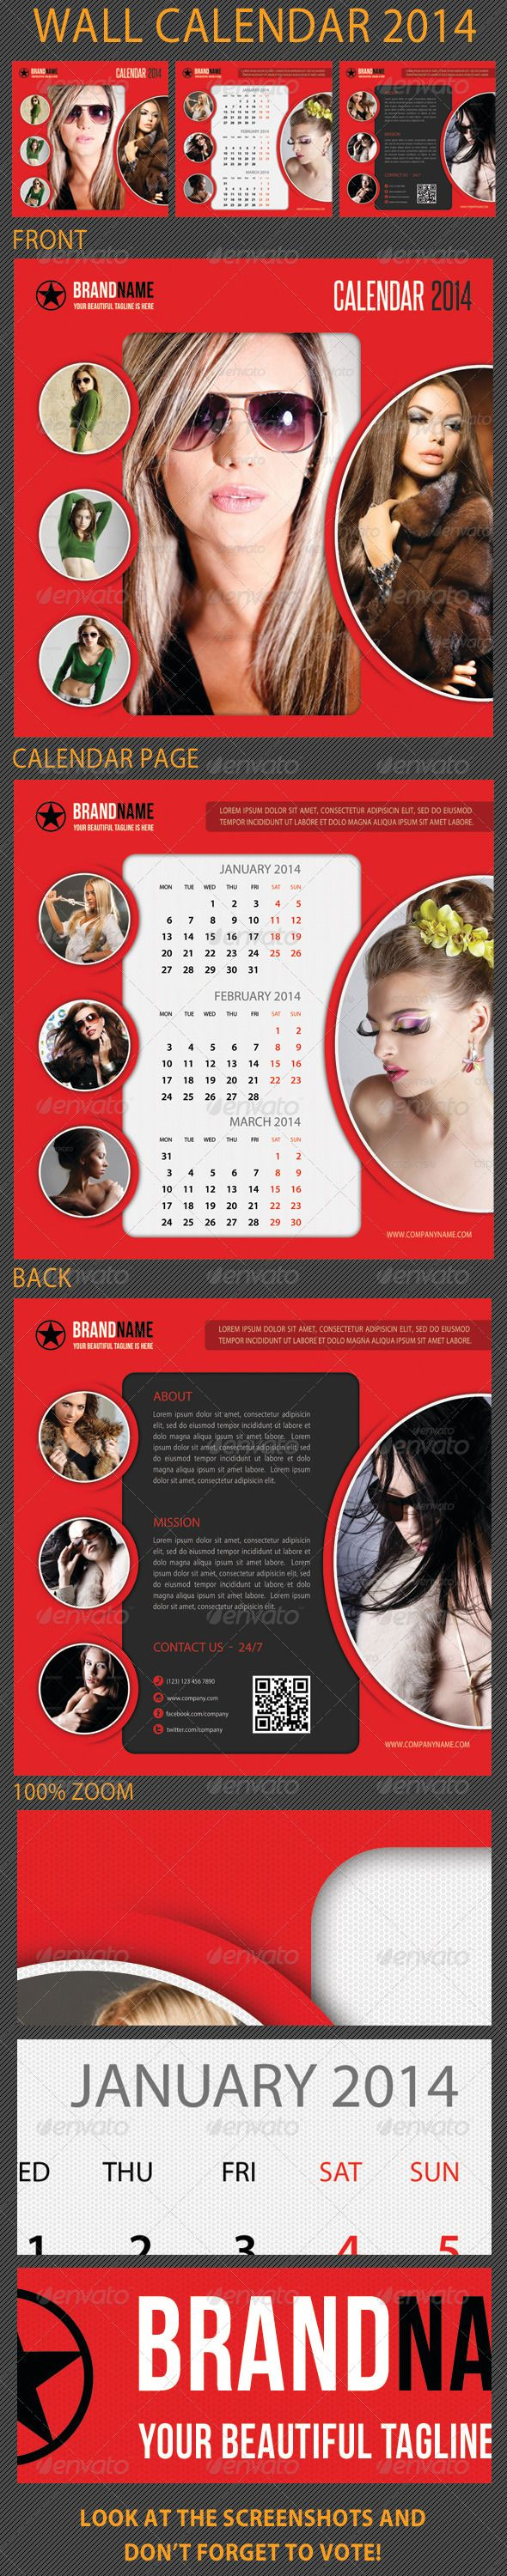 Wall Calendar 2014  #GraphicRiver         A clean, crisp, high impact, multiuse PSD Calendar Template Layout, perfect for advertisement, presentation or product promotion! Highly editable PSD calendar template, very easily customise to make it your own in seconds!  Pack included: 	 	 6 PSD files 		 Front and Back page 		 Fully Layered – well organized folder 		 Clean Design 		 Bleed Size: 11.25×11.25 inches 		 Standart Cut Size: 11×11 inches 		 Bleeds 0.125 inches all side 		 High Quality 		…